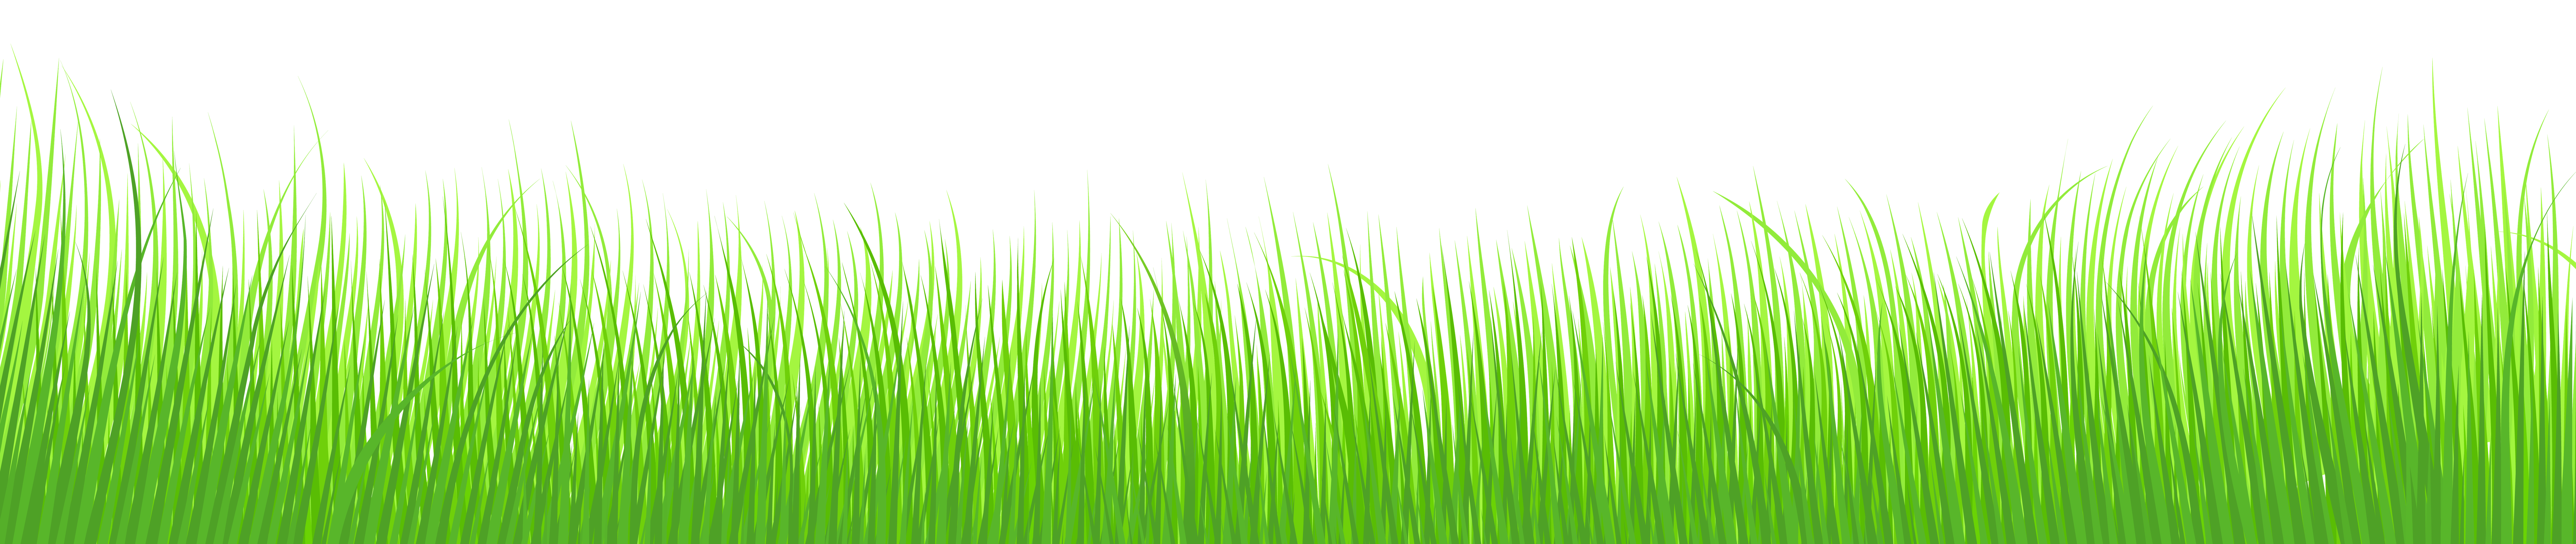 Grass clipart border clipart images gallery for free.